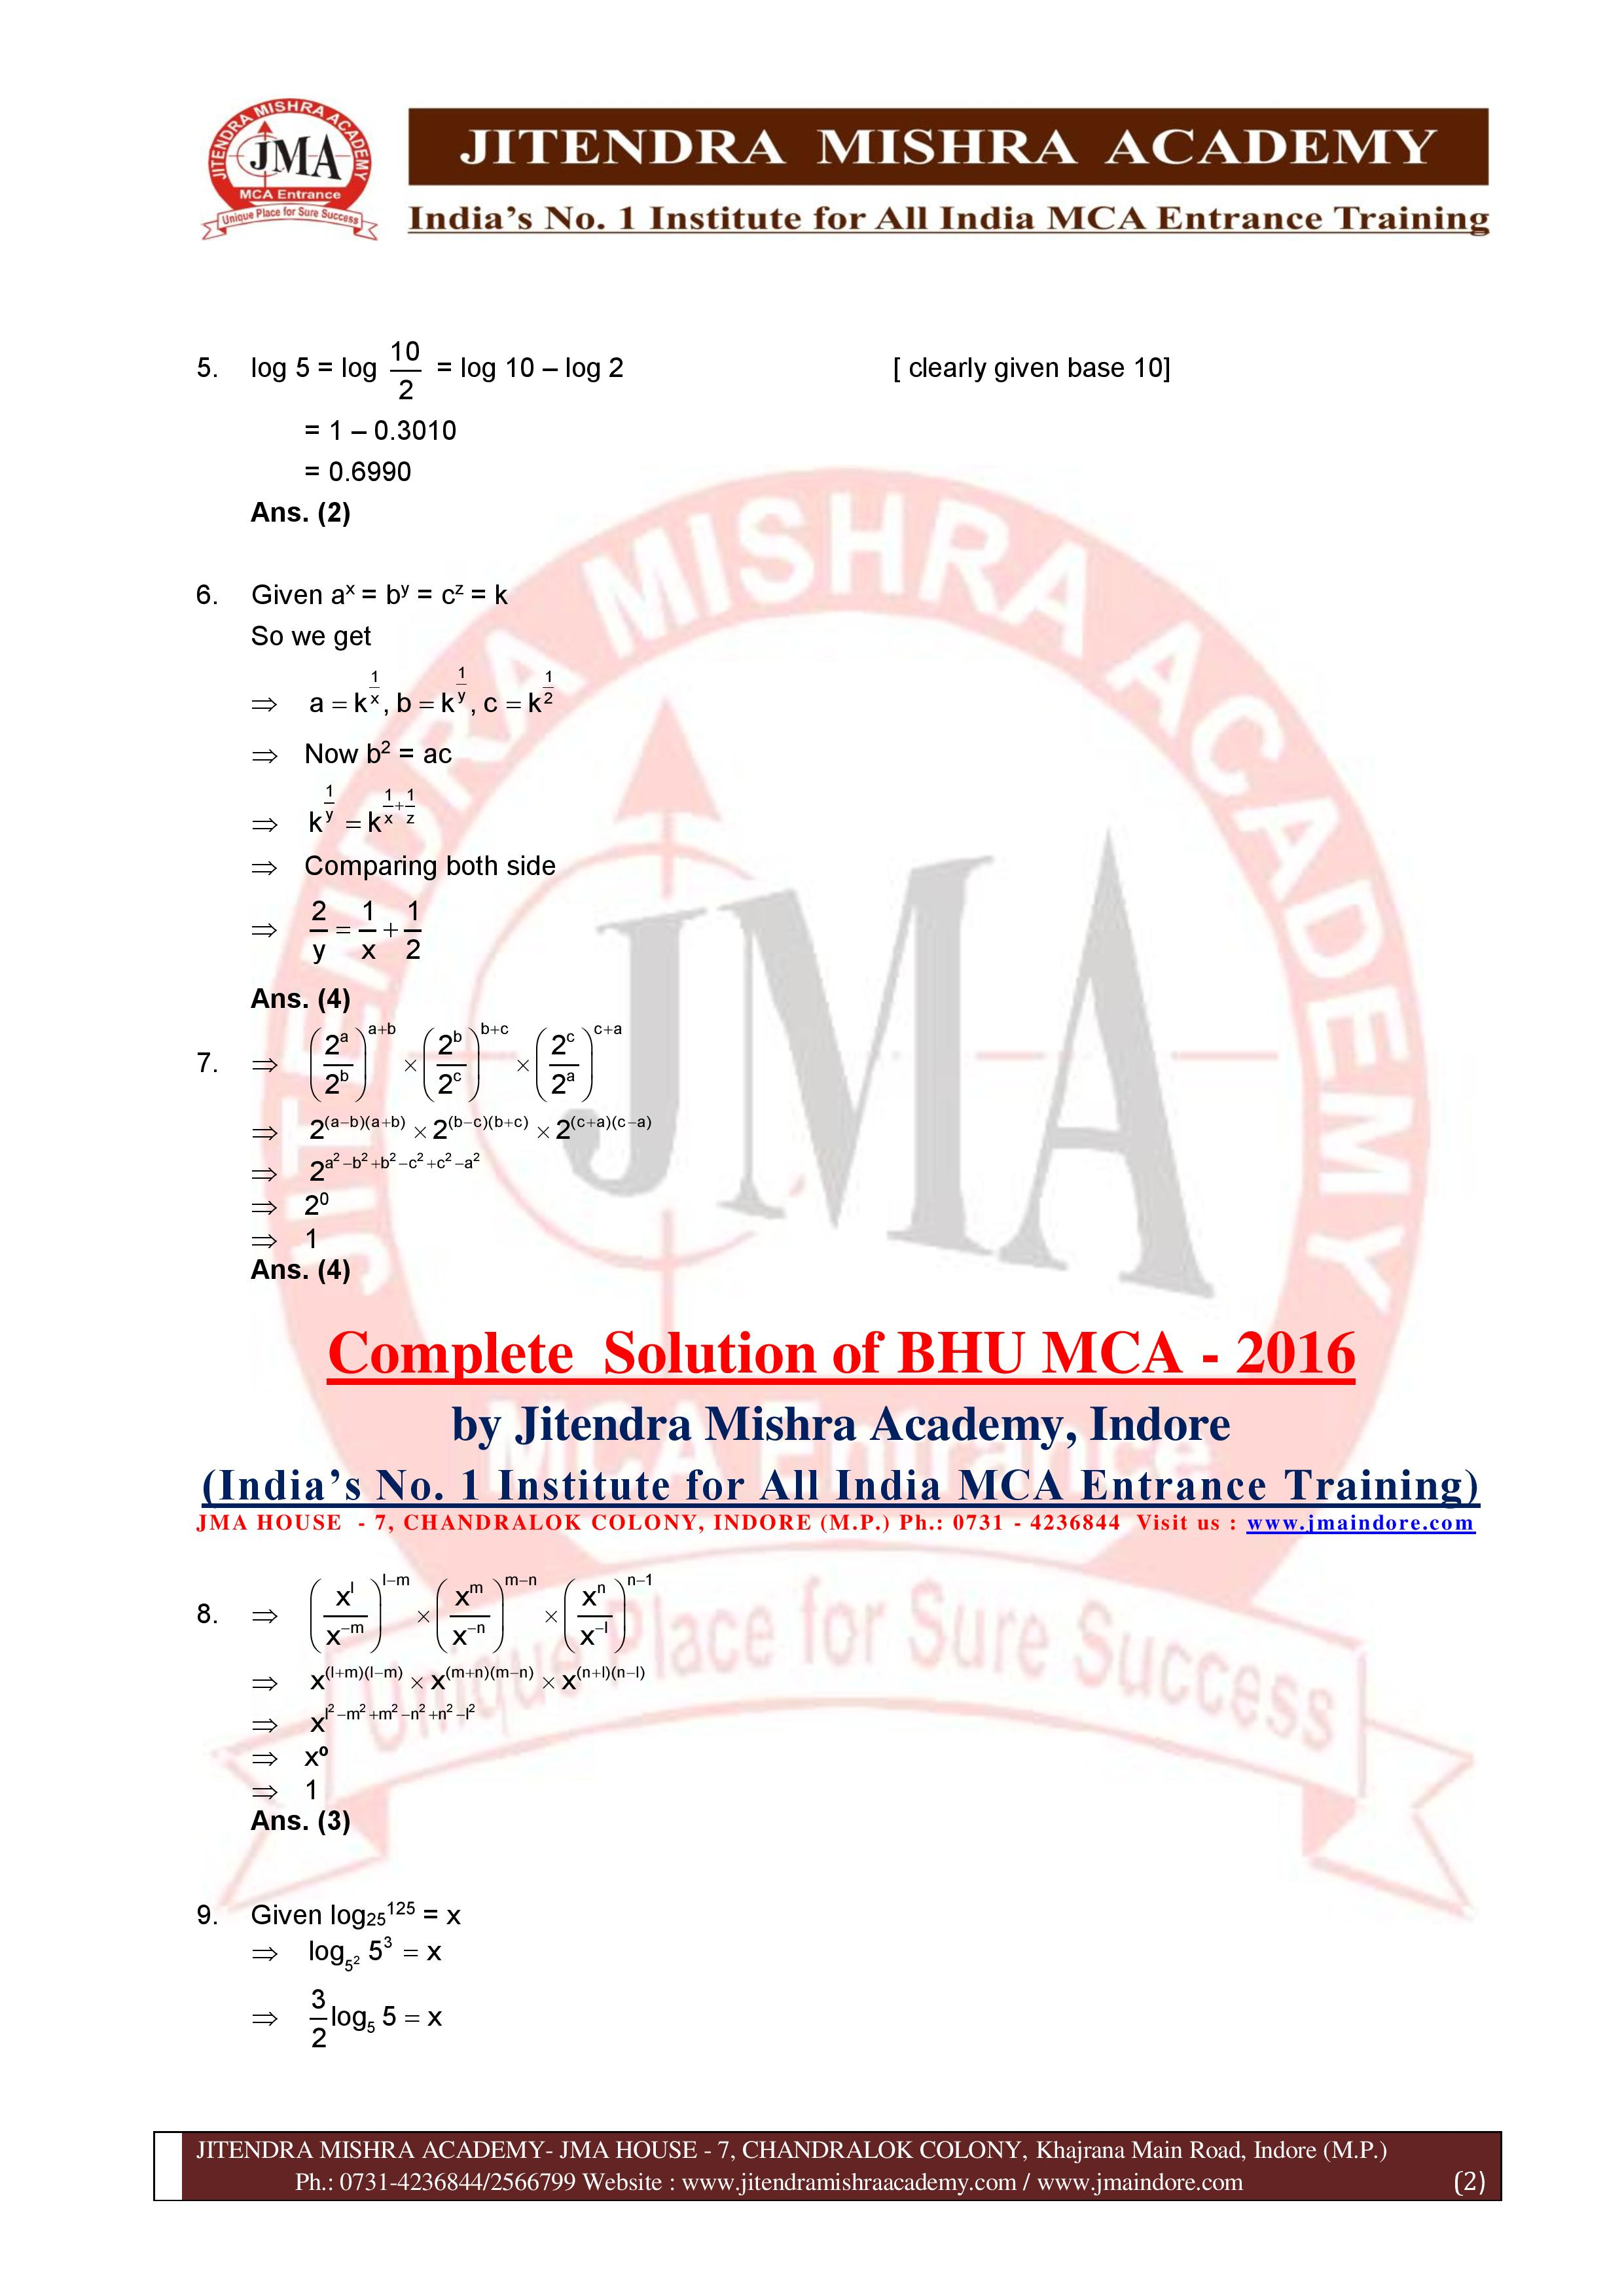 BHU 2016 SOLUTION (SET - 1)-page-002